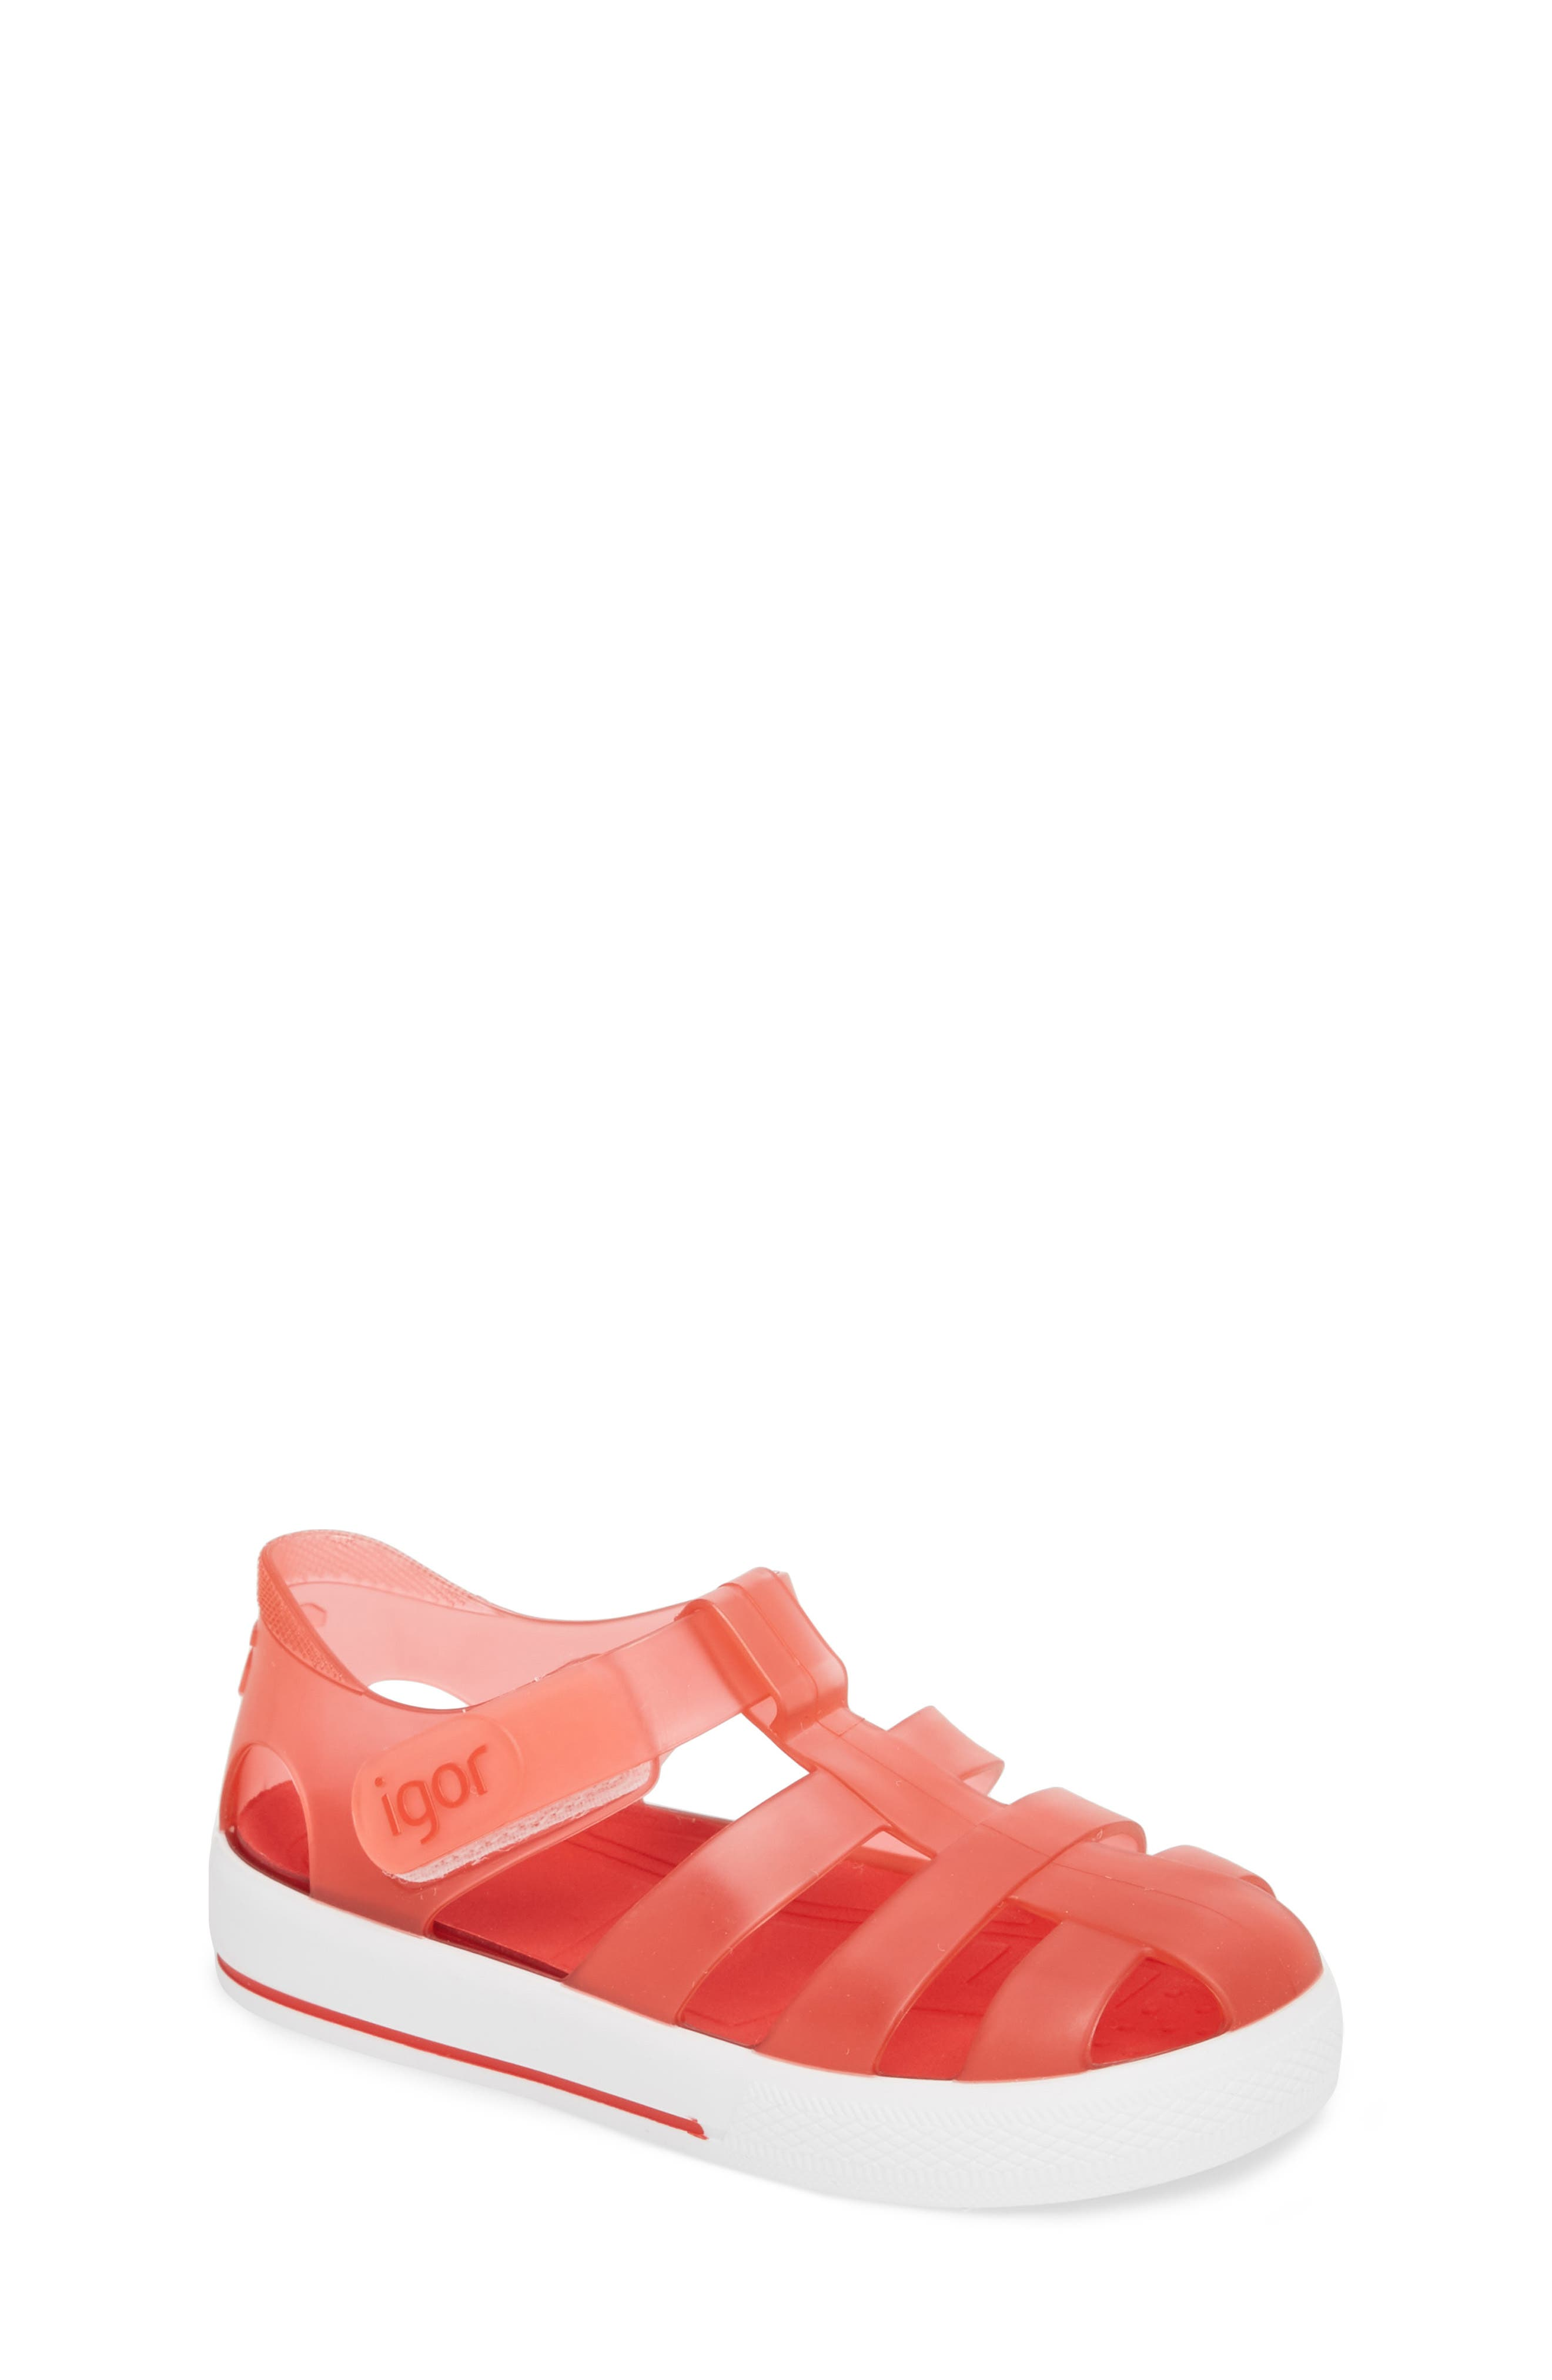 'Star' Glitter Jelly Fisherman Sandal,                         Main,                         color, Red